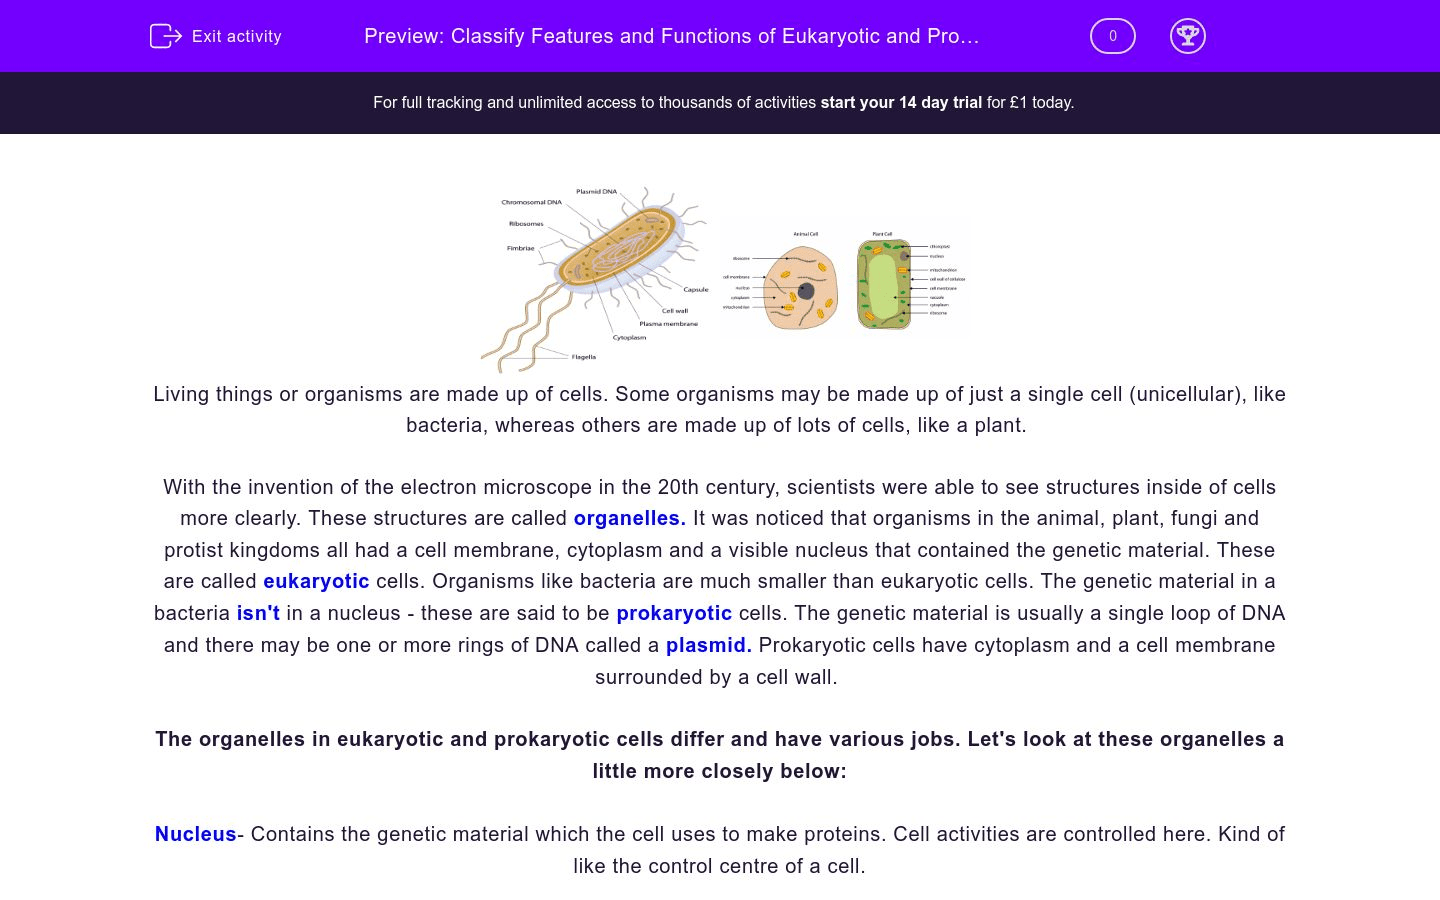 Classify Features And Functions Of Eukaryotic And